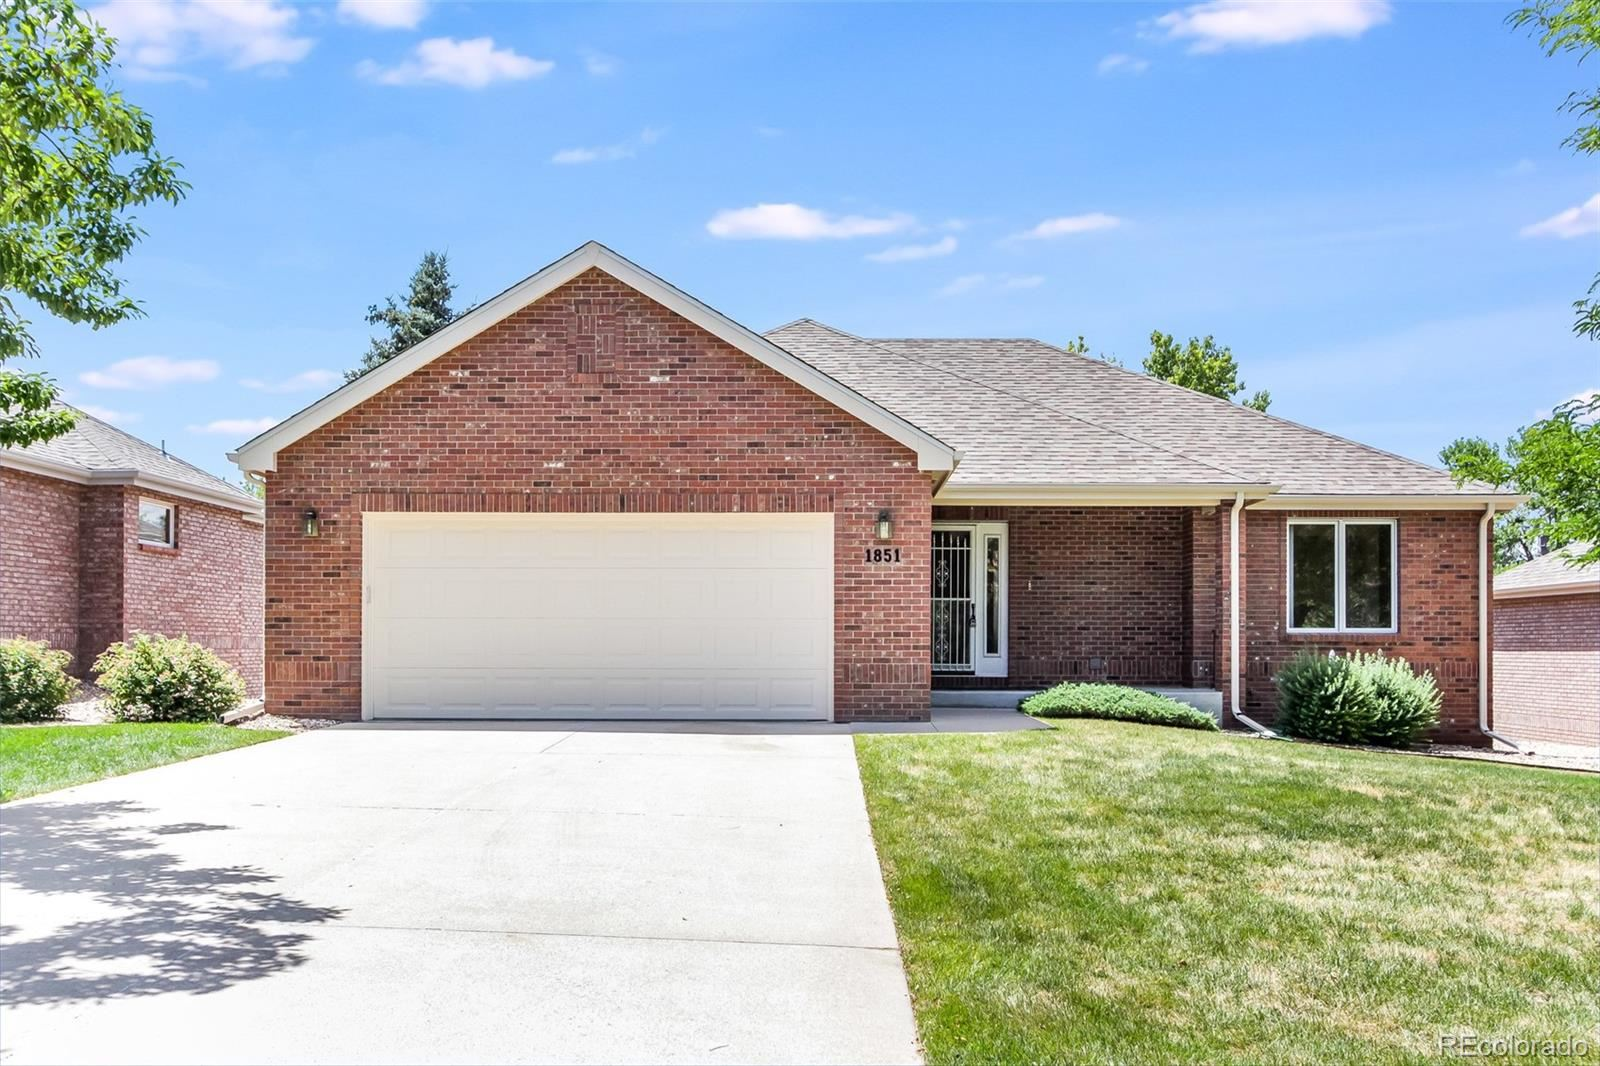 1851 44th Avenue Court, Greeley, CO 80634 - #: 4312861